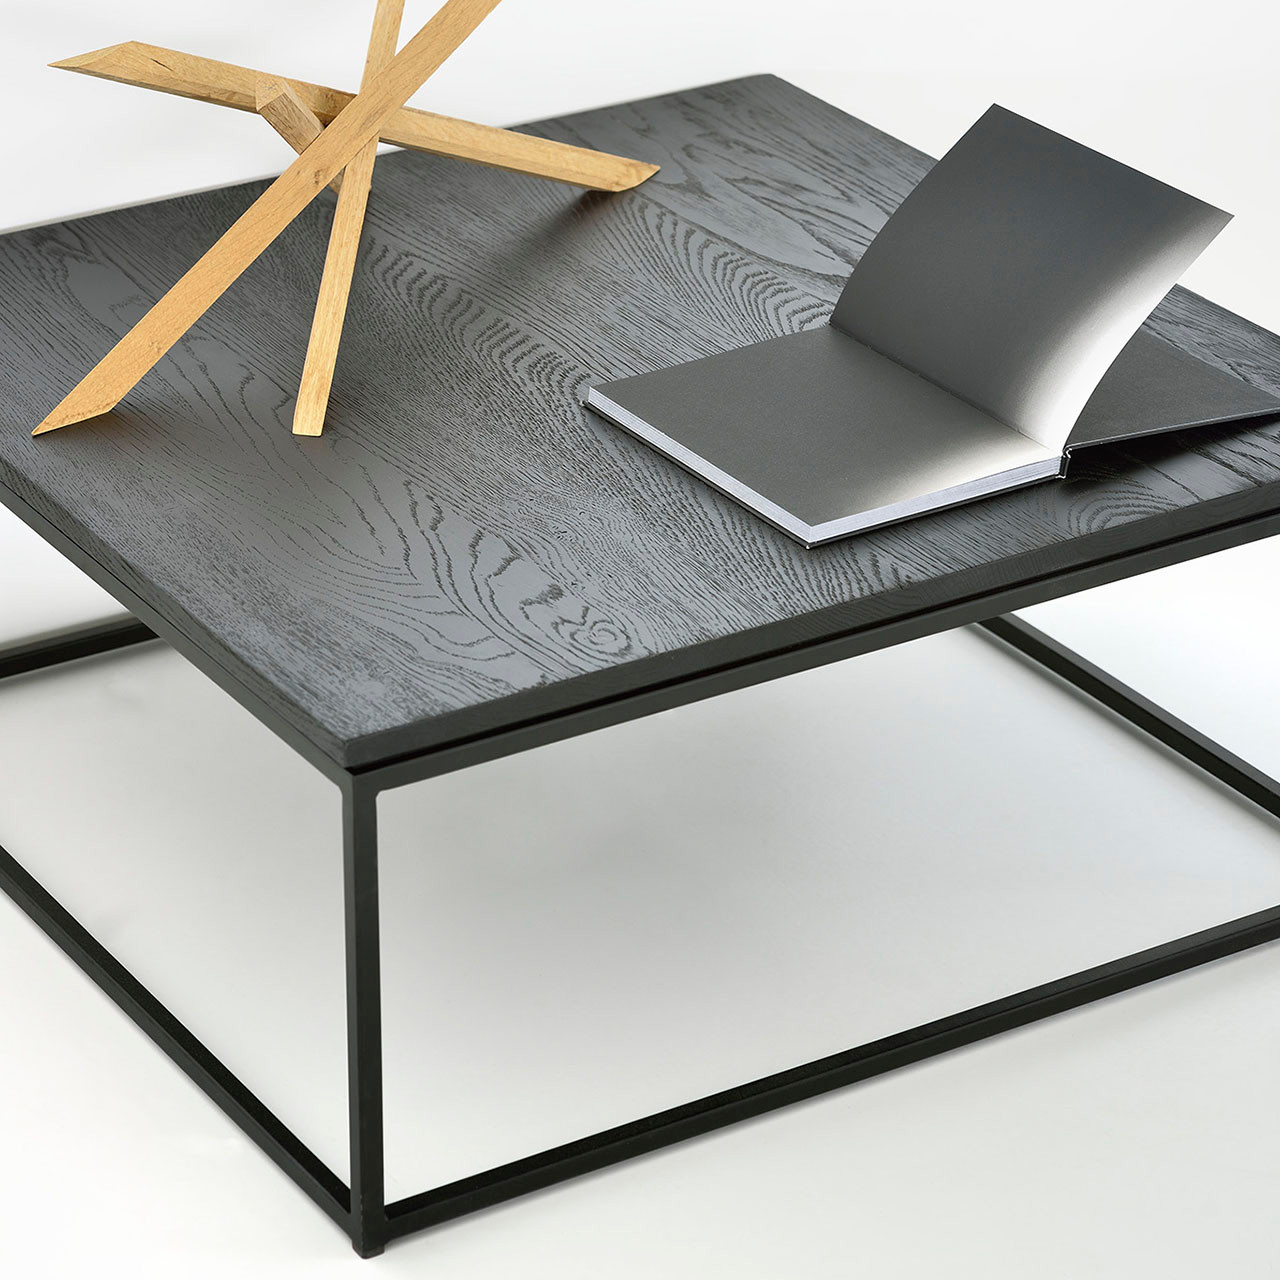 Rhett Oak Thin Coffee Table - Black or Natural